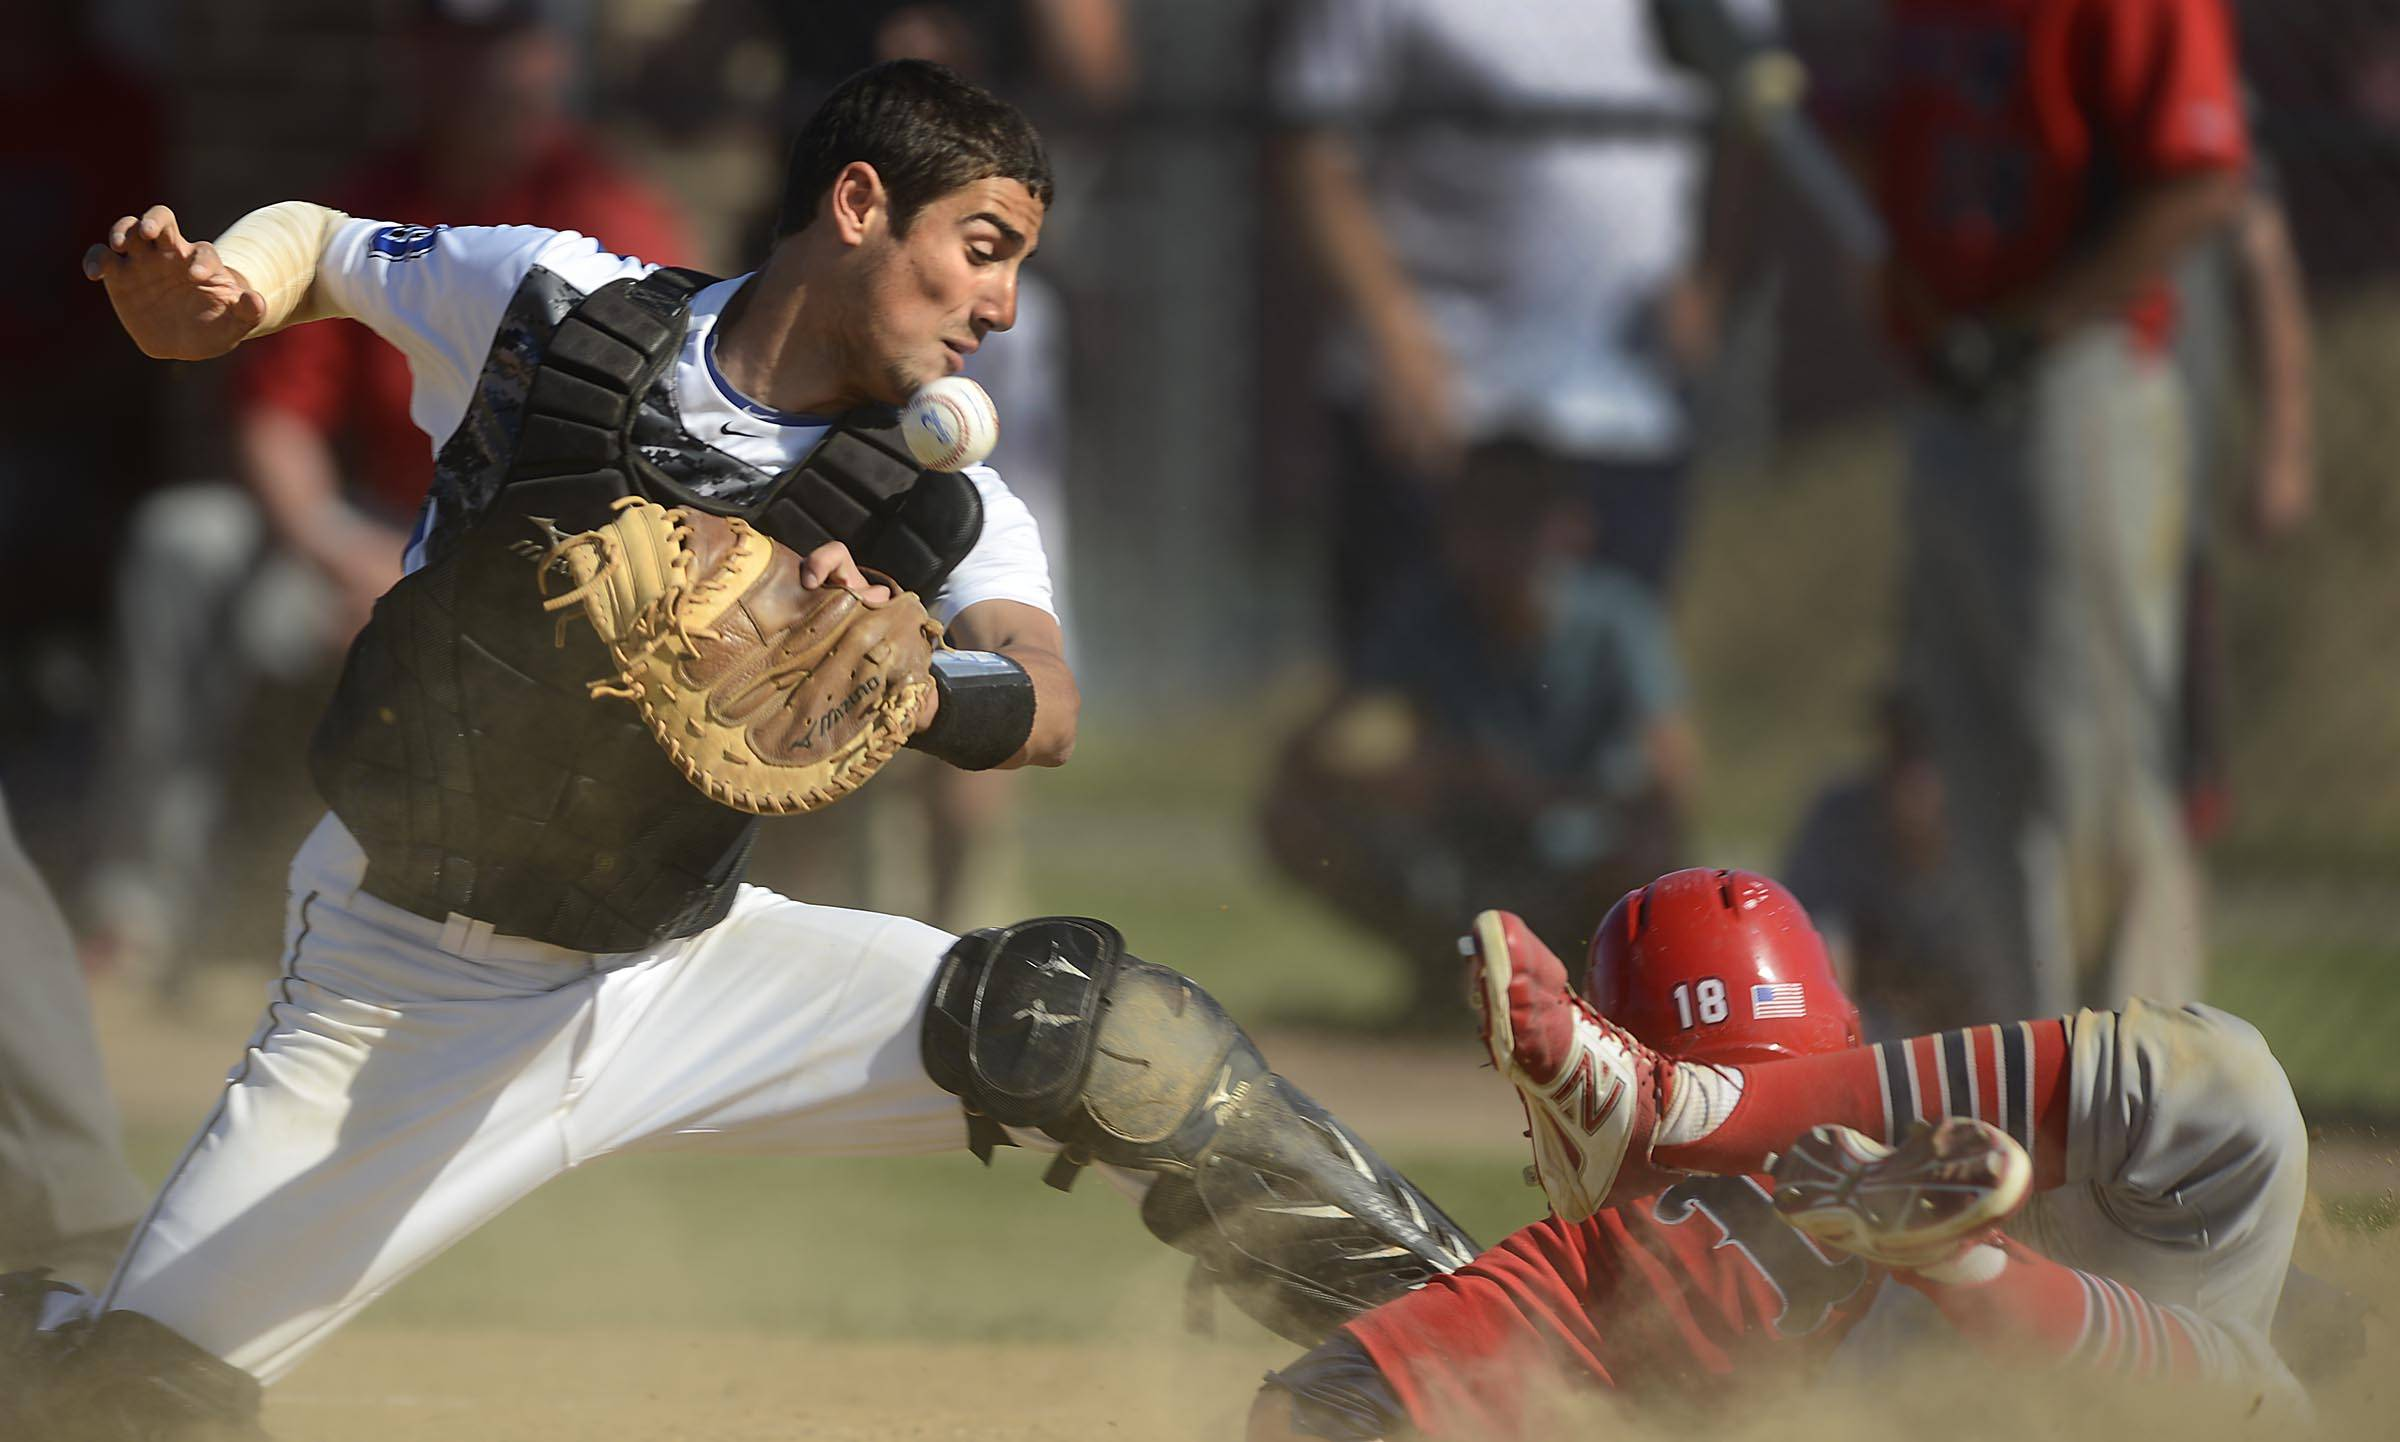 St. Charles North catcher Kyle Khoury loses the ball as he turns to tag South Elgin's Nick Menken in the first inning in the Class 4A Schaumburg sectional semifinal game Thursday.